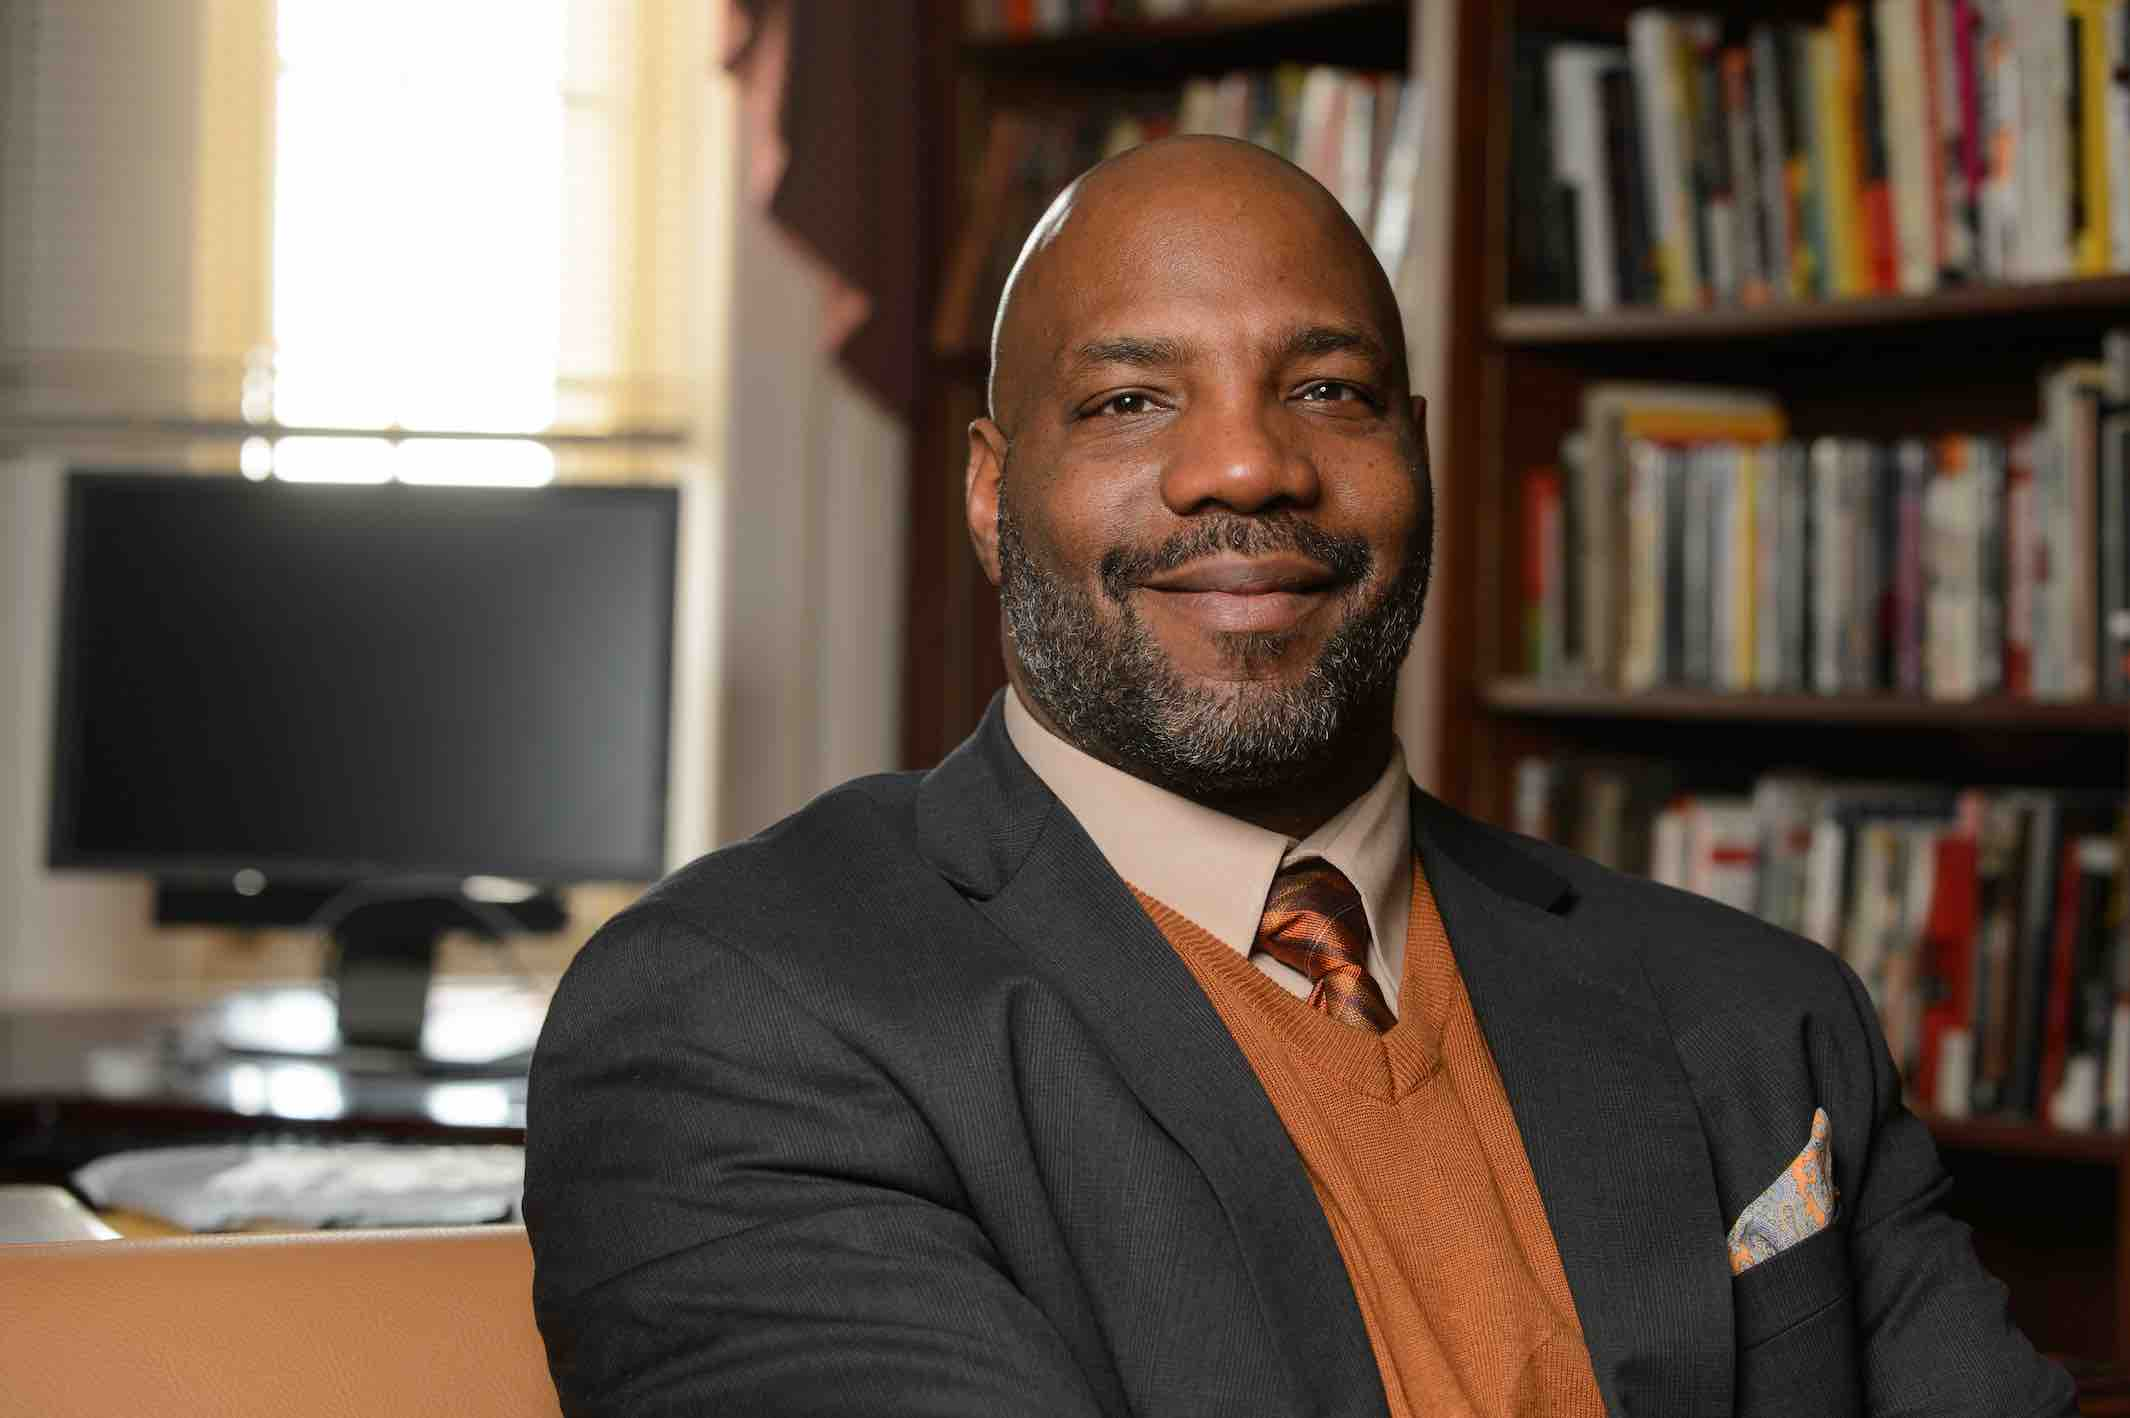 Jelani Cobb, a Black man in a suit jacket, smiles at the camera; in the foreground: bookshelves and a computer